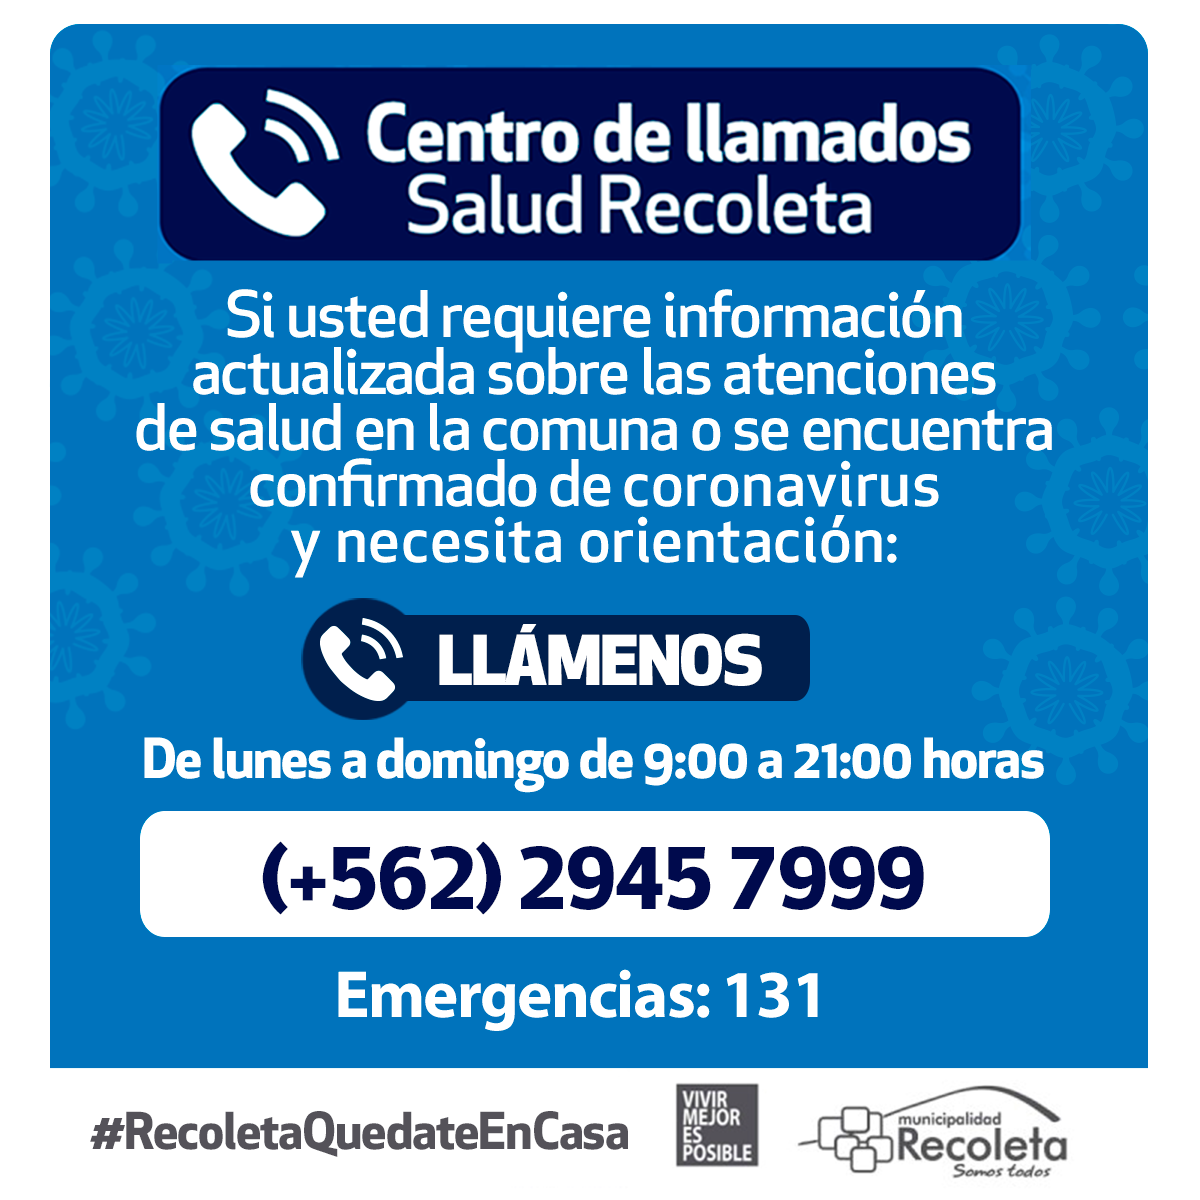 CALL-CENTER-SALUD-mayo20